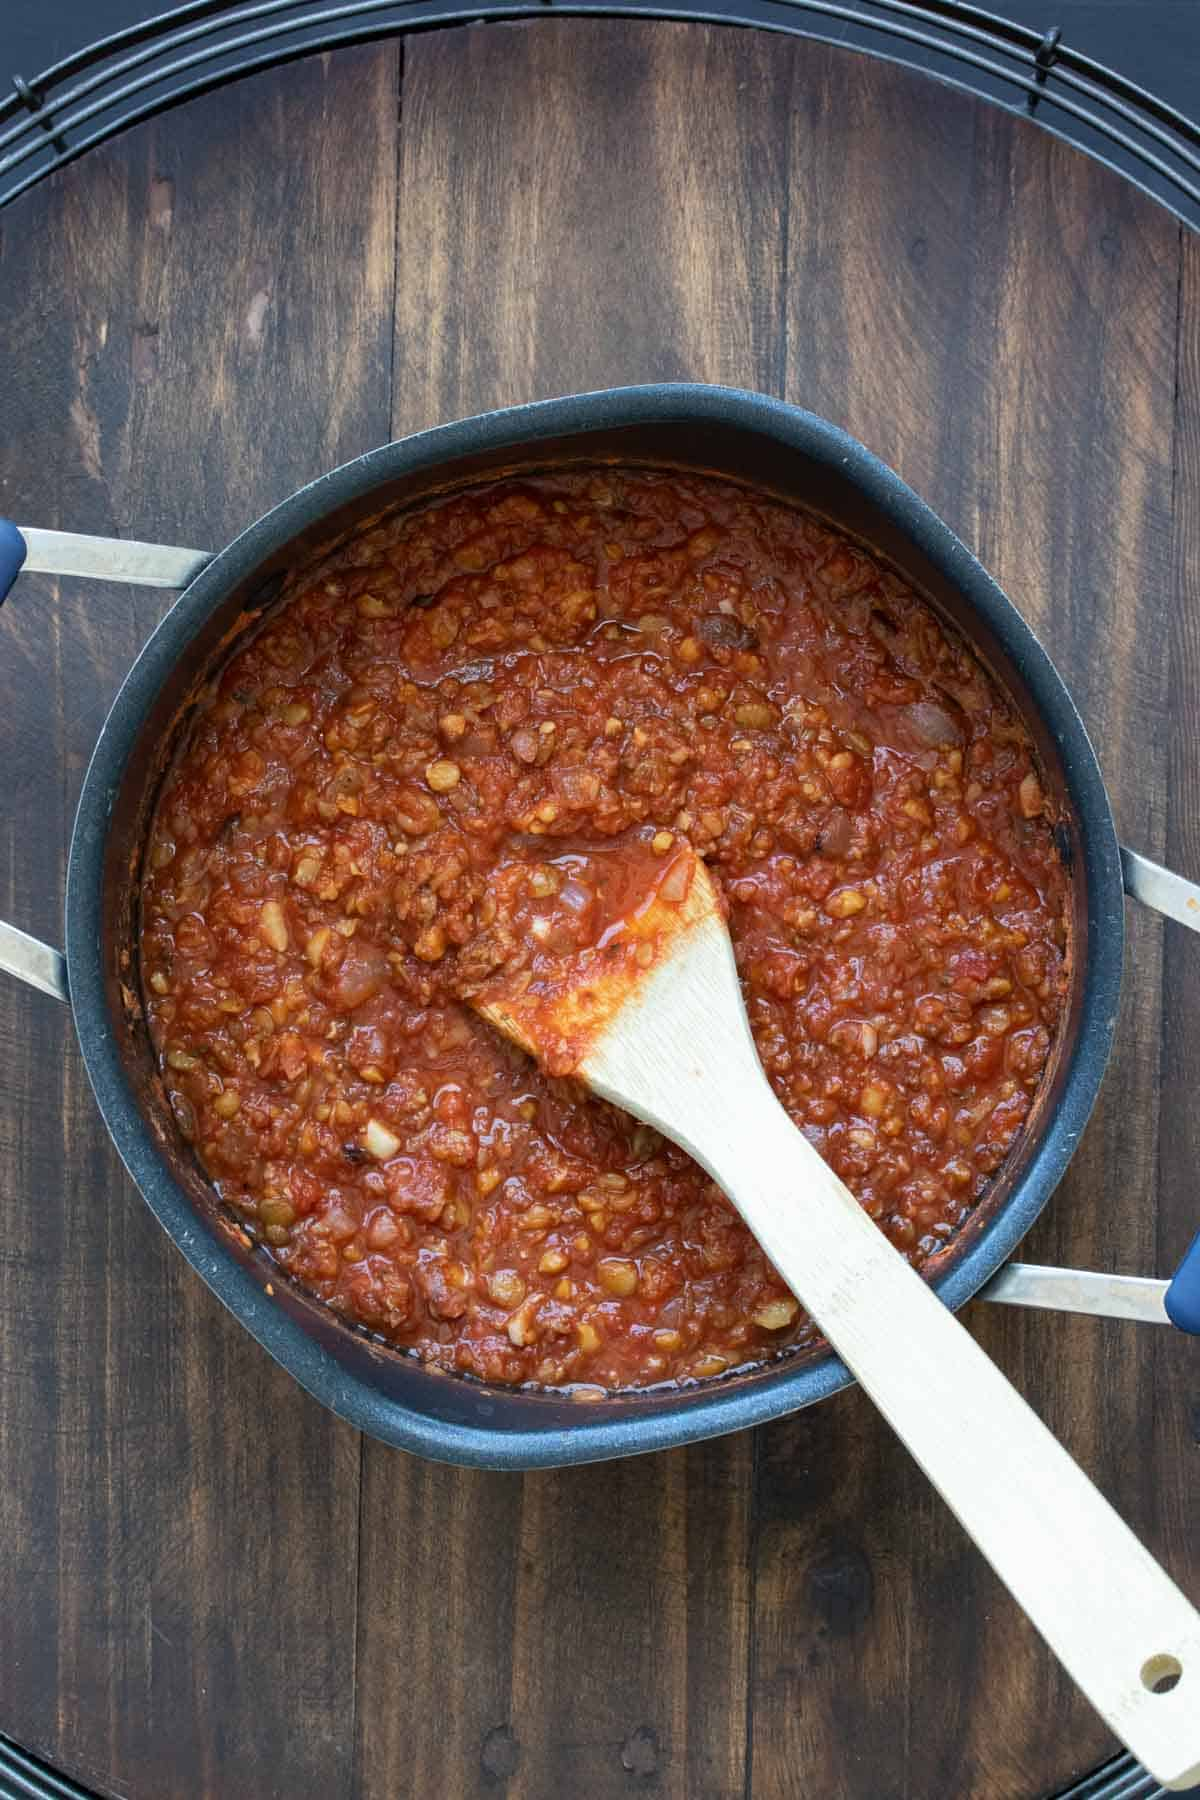 Wooden spoon mixing a bean based marinara in a pot